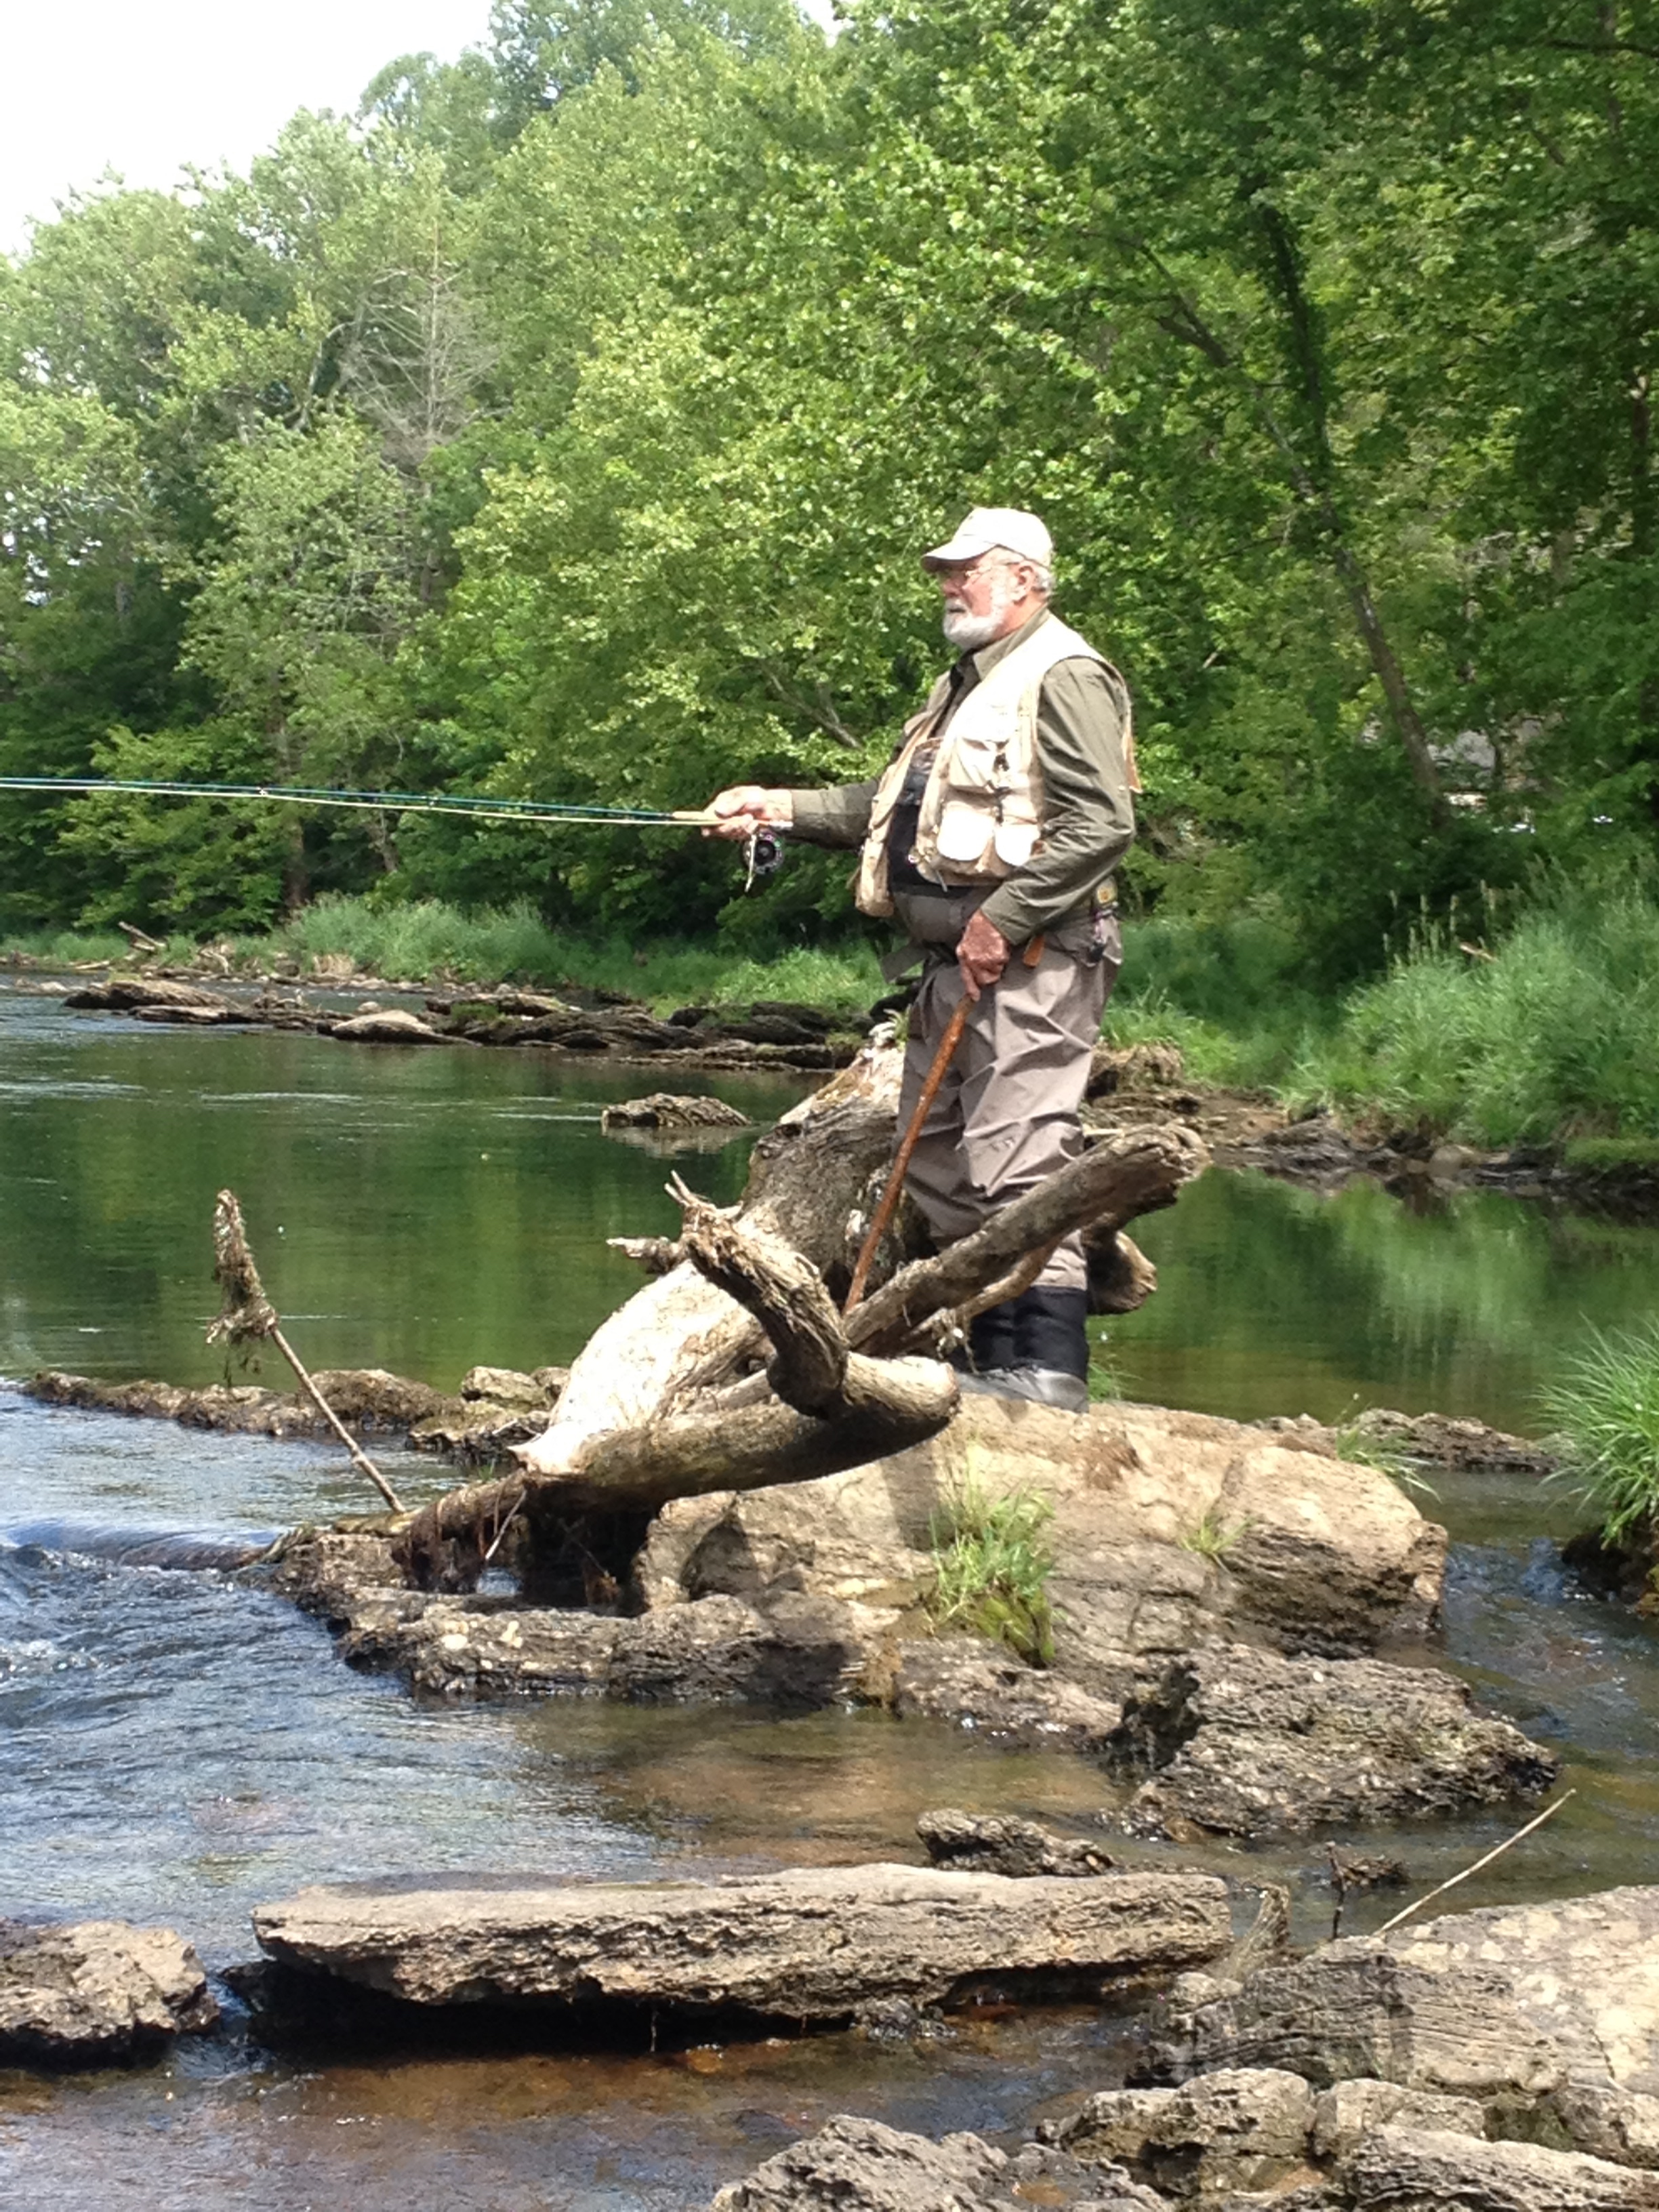 project healing waters The vision of project healing waters fly fishing canada is outlined on this page, including the hopes for canadian veterans and first responders.